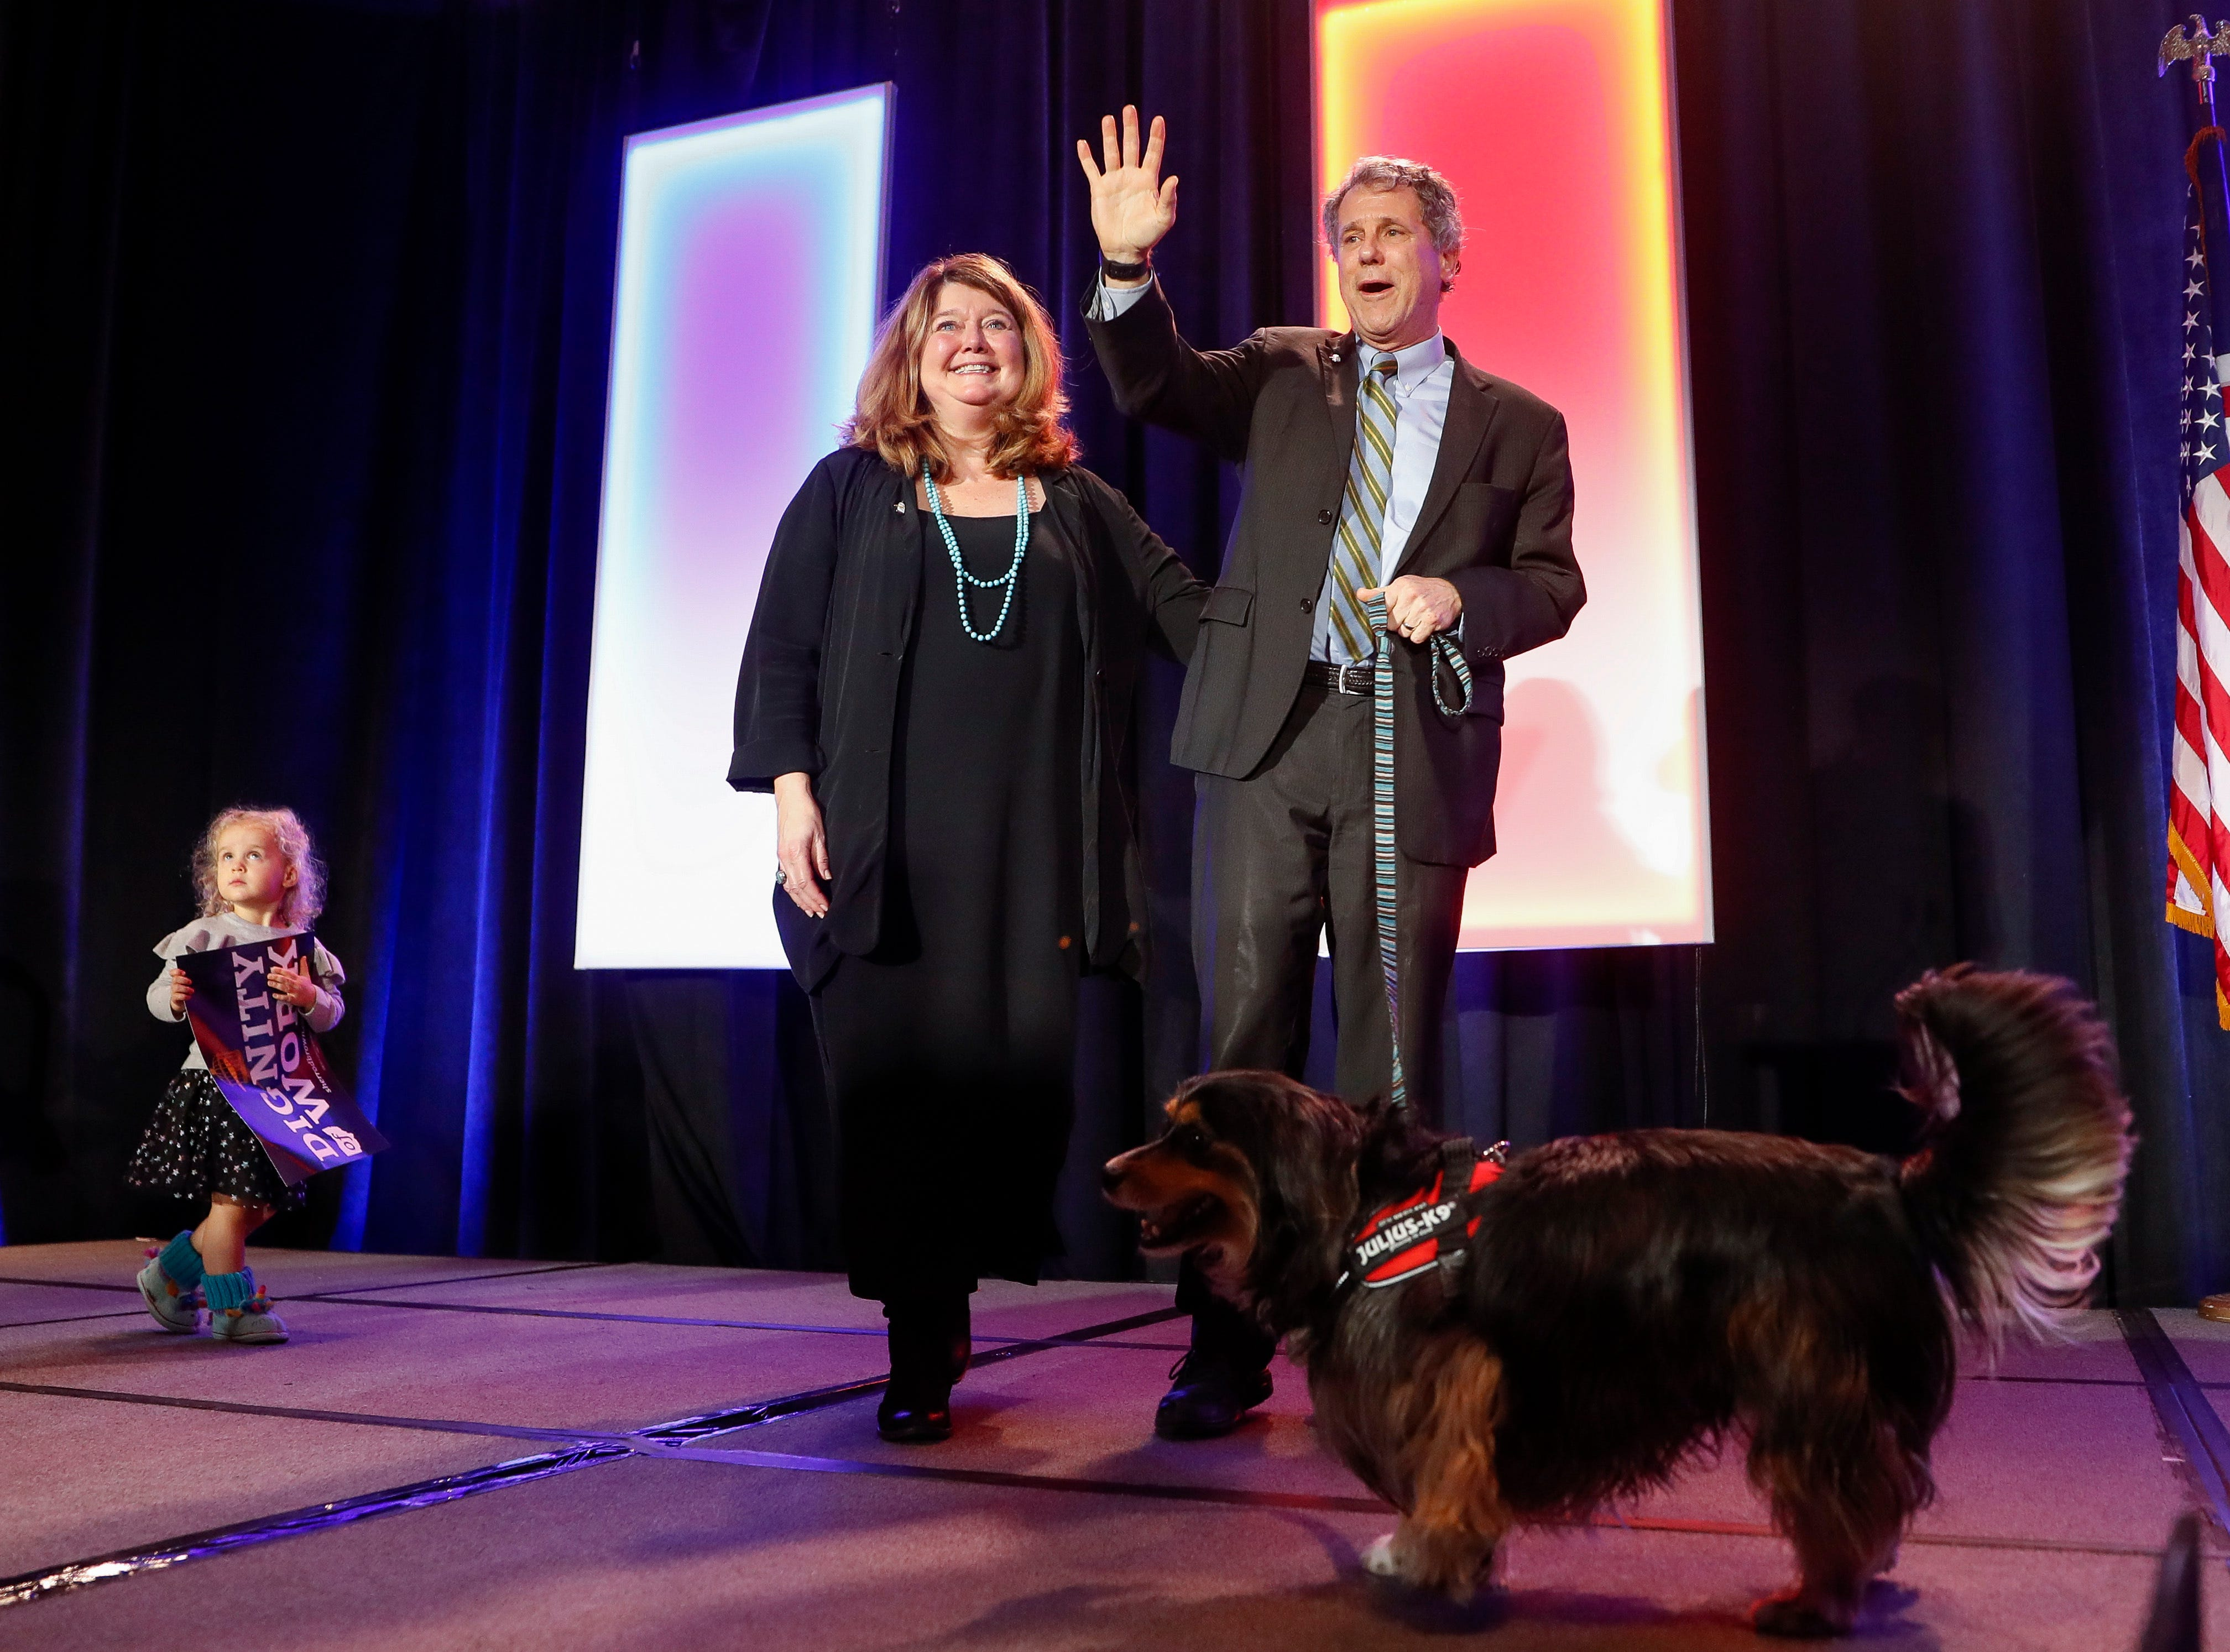 Yup, you just saw a dog on stage with Sen. Sherrod Brown during his victory speech